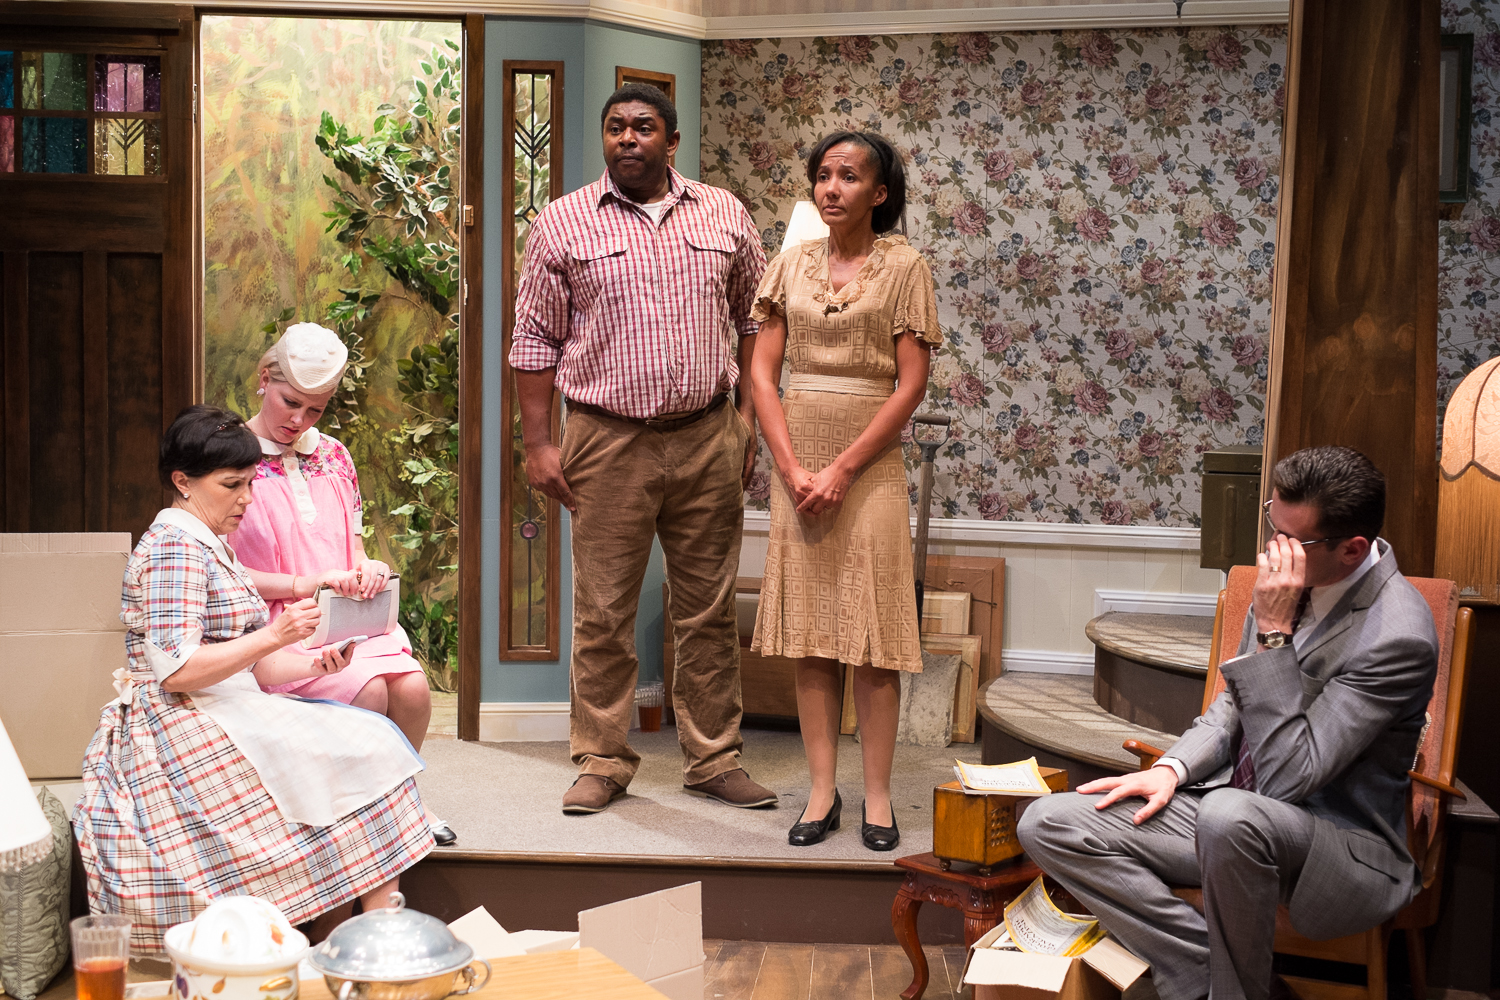 Wendy, Briallen Clarke, Cleave Williams, Paula Arundell and Nathan Lovejoy in Clybourne Park (Photo: Clare Hawley, used with permission of Ensemble Theatre)